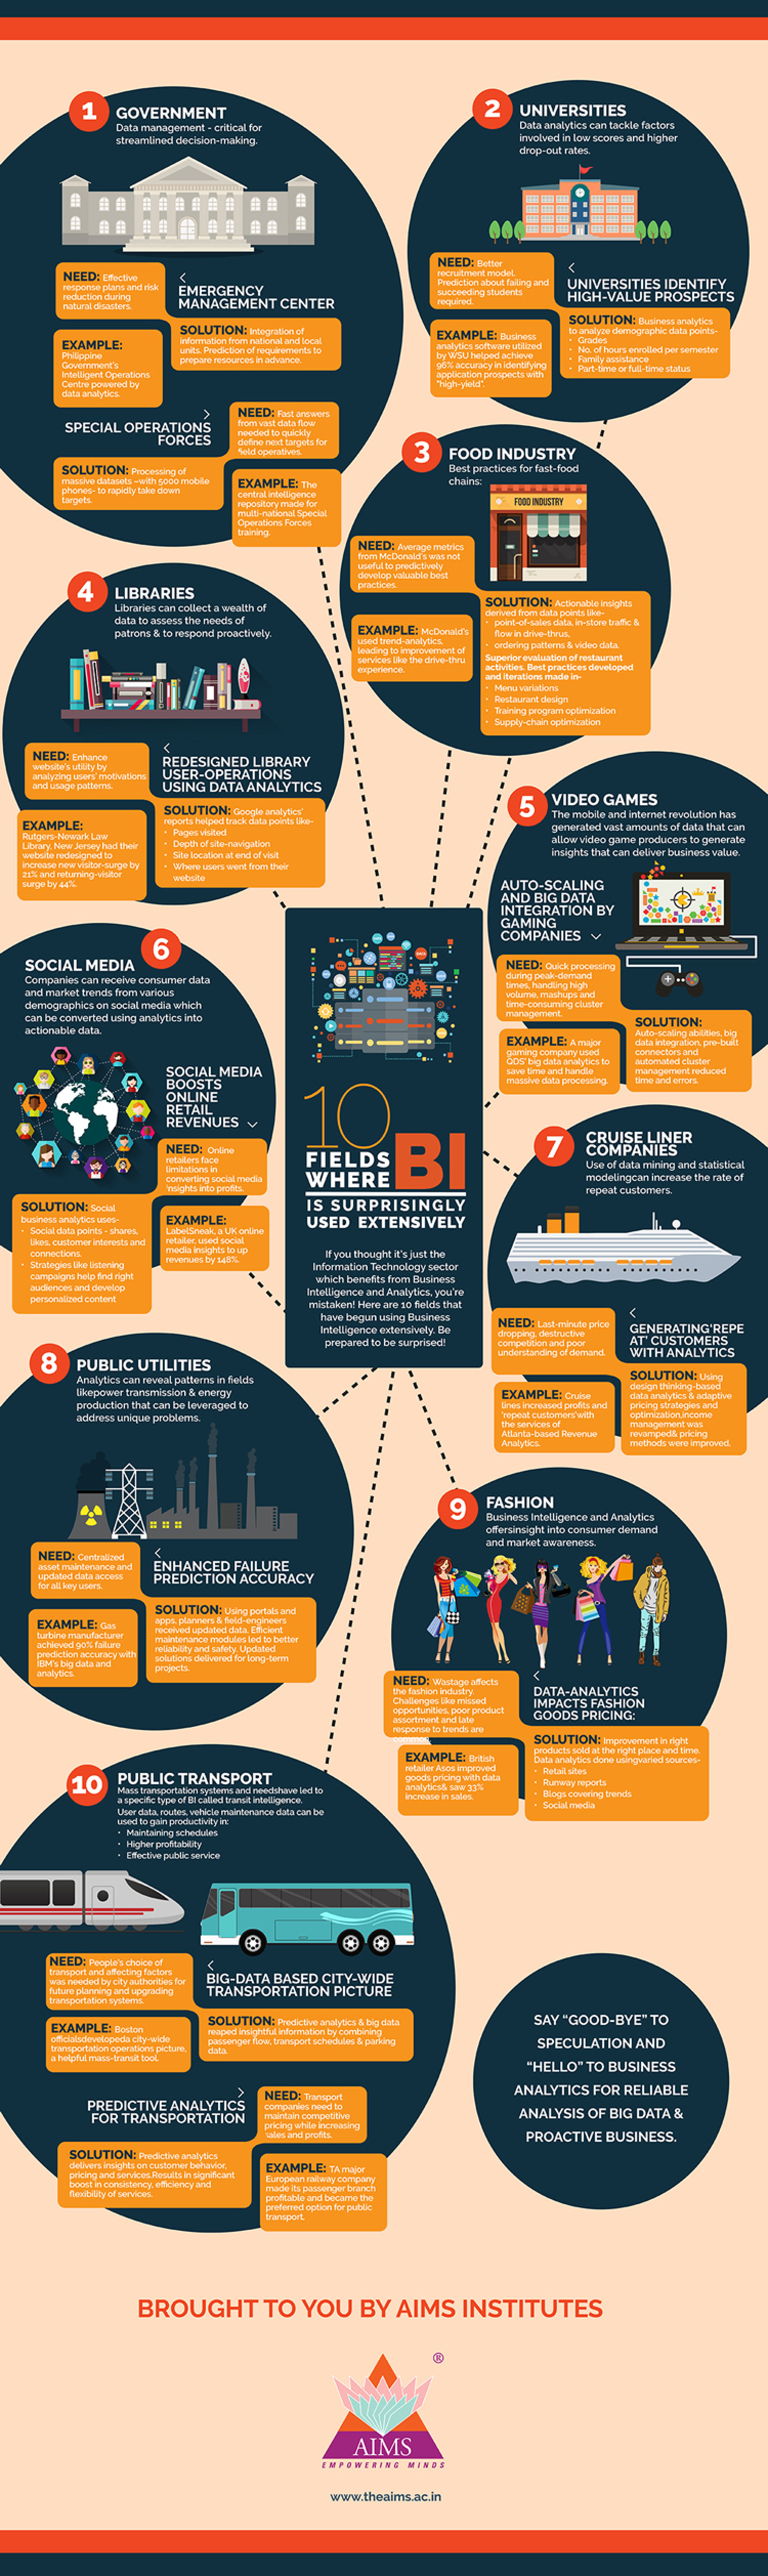 10 Fields Where BI is Surprisingly Used Extensively Infographic